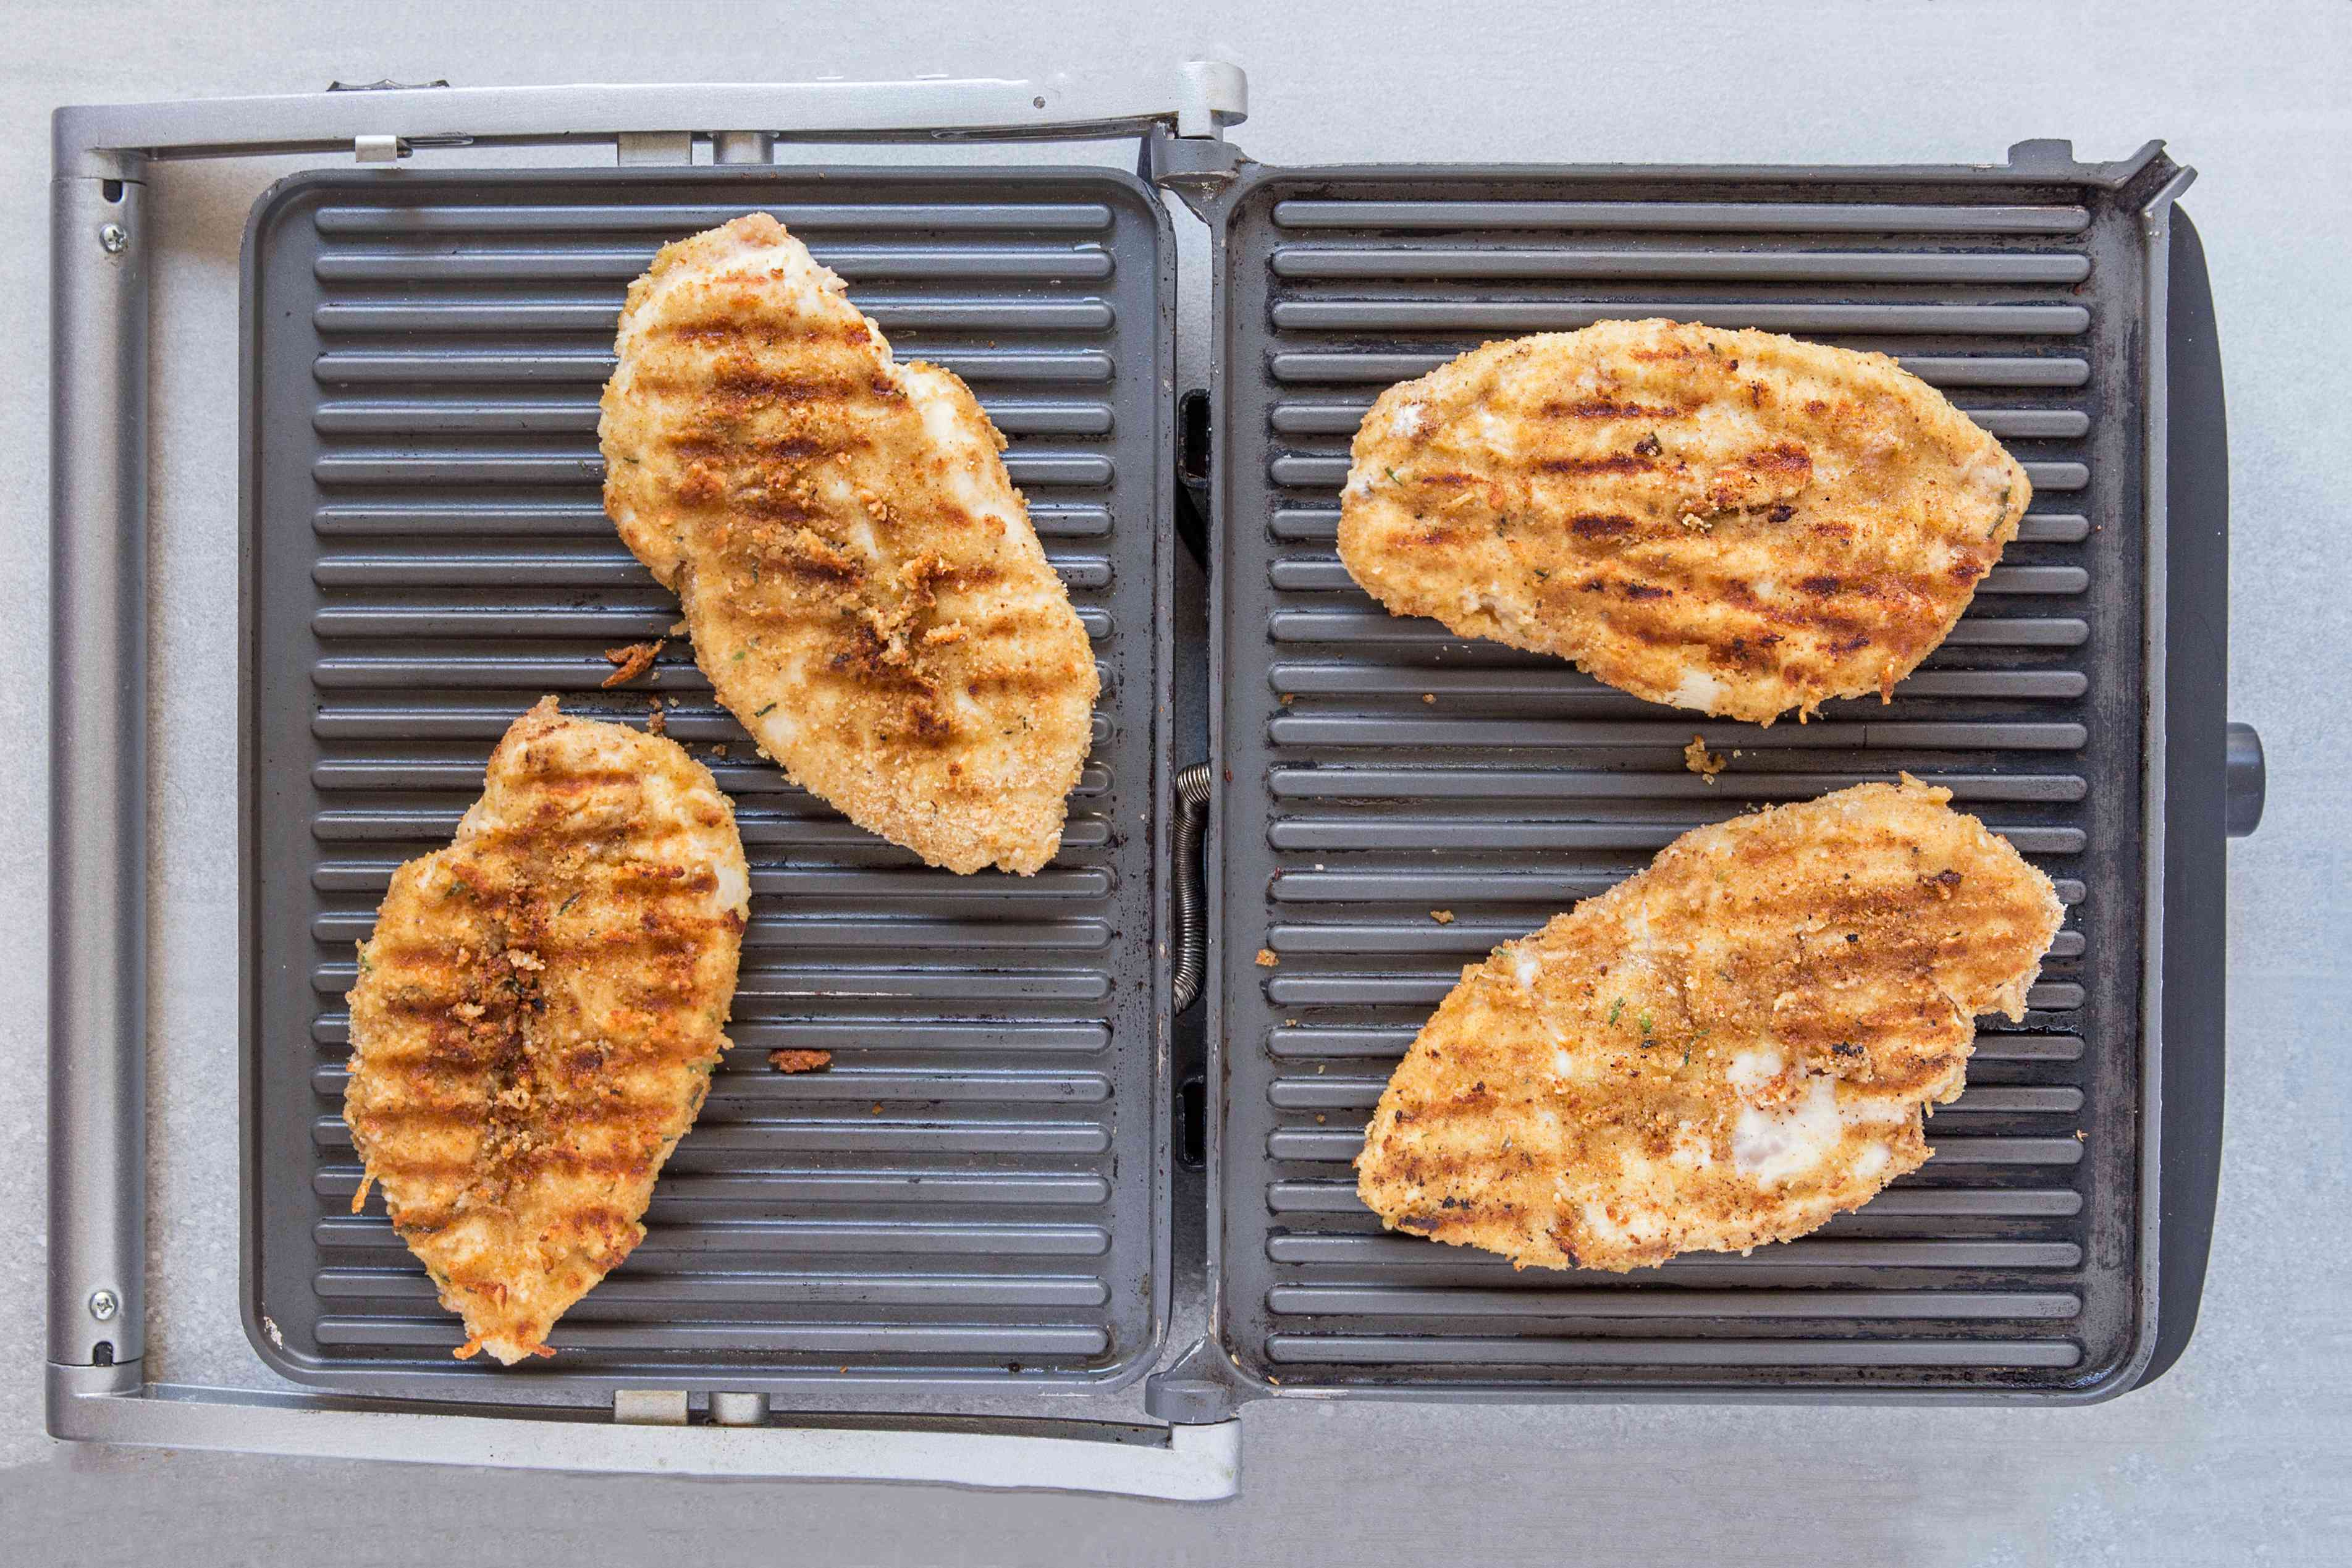 Crispy grilled chicken on an indoor grill